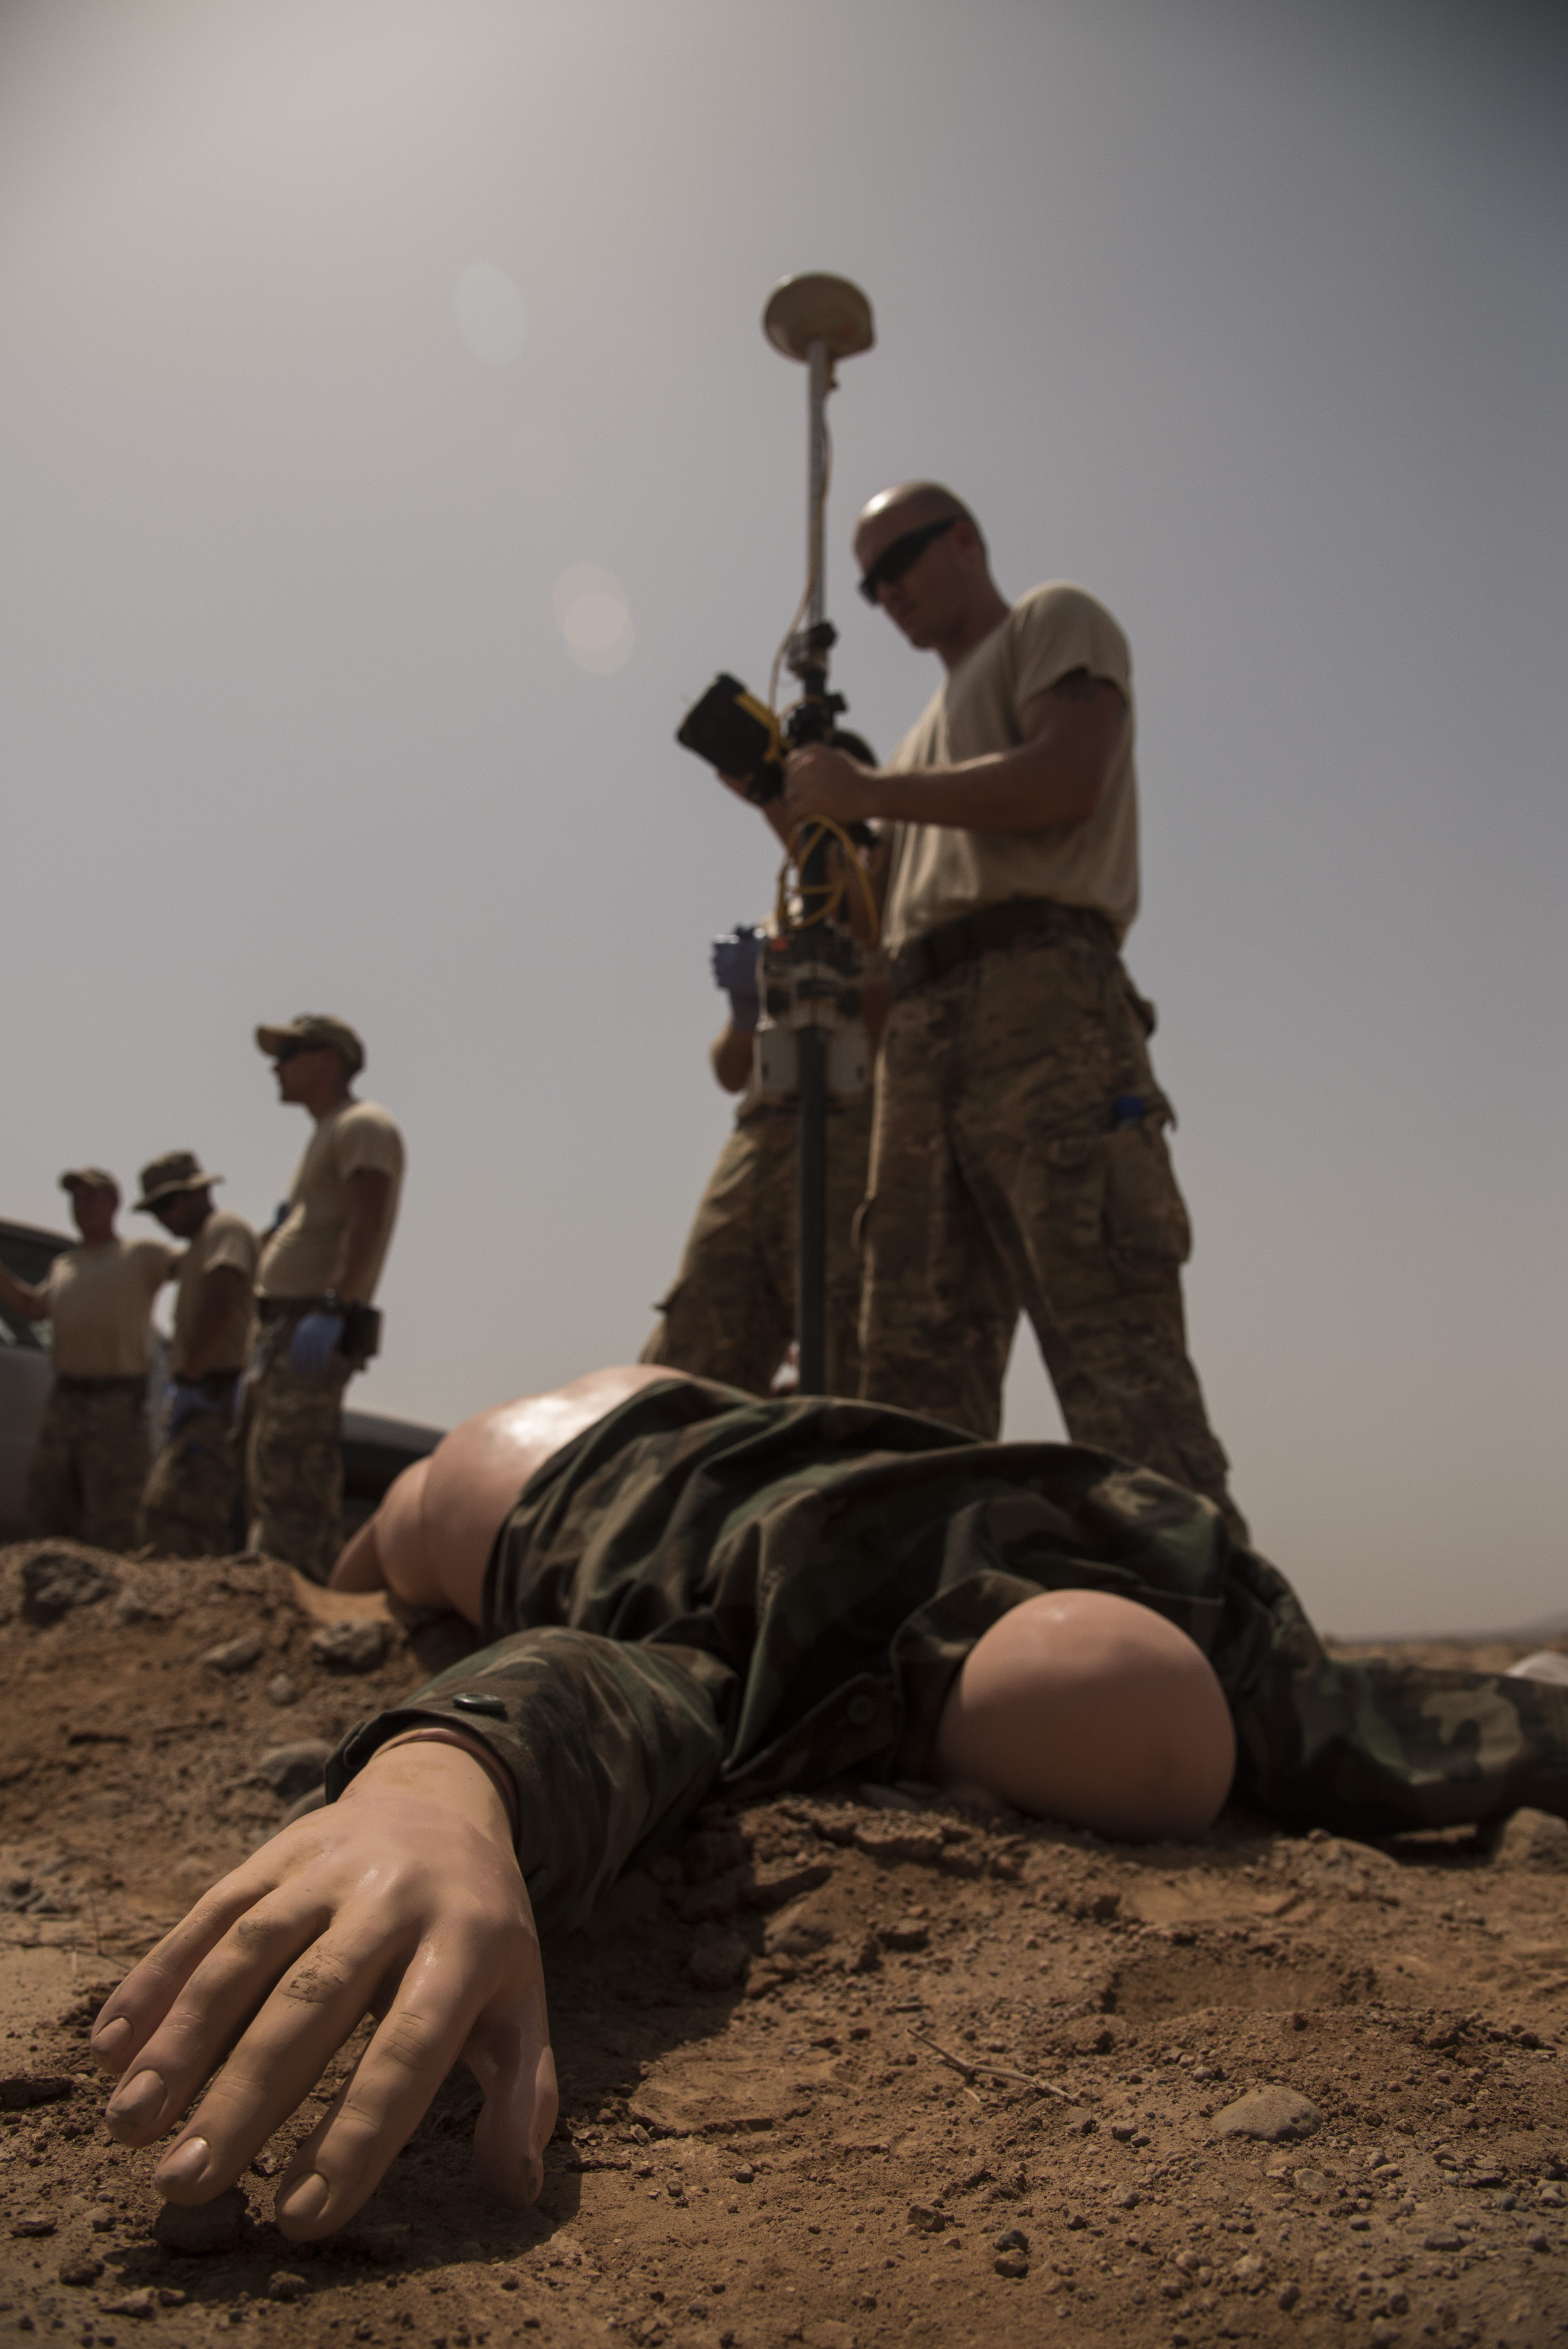 DJIBOUTI- U.S. Air Force Master Sgt. Jason McNabb, 870th Air Expeditionary Squadron Services, records the location of a mock casualty during a mass casualty exercise, June 1, 2016, at nearby airfield. The exercise involved personnel from Chabelley Airfield, Camp Lemonnier, and Combined Joint Task Force-Horn of Africa to test their skills in search and recovery, communication, coordination and mortuary affairs collection point processes. (U.S. Air Force photo by Staff Sgt. Tiffany DeNault)